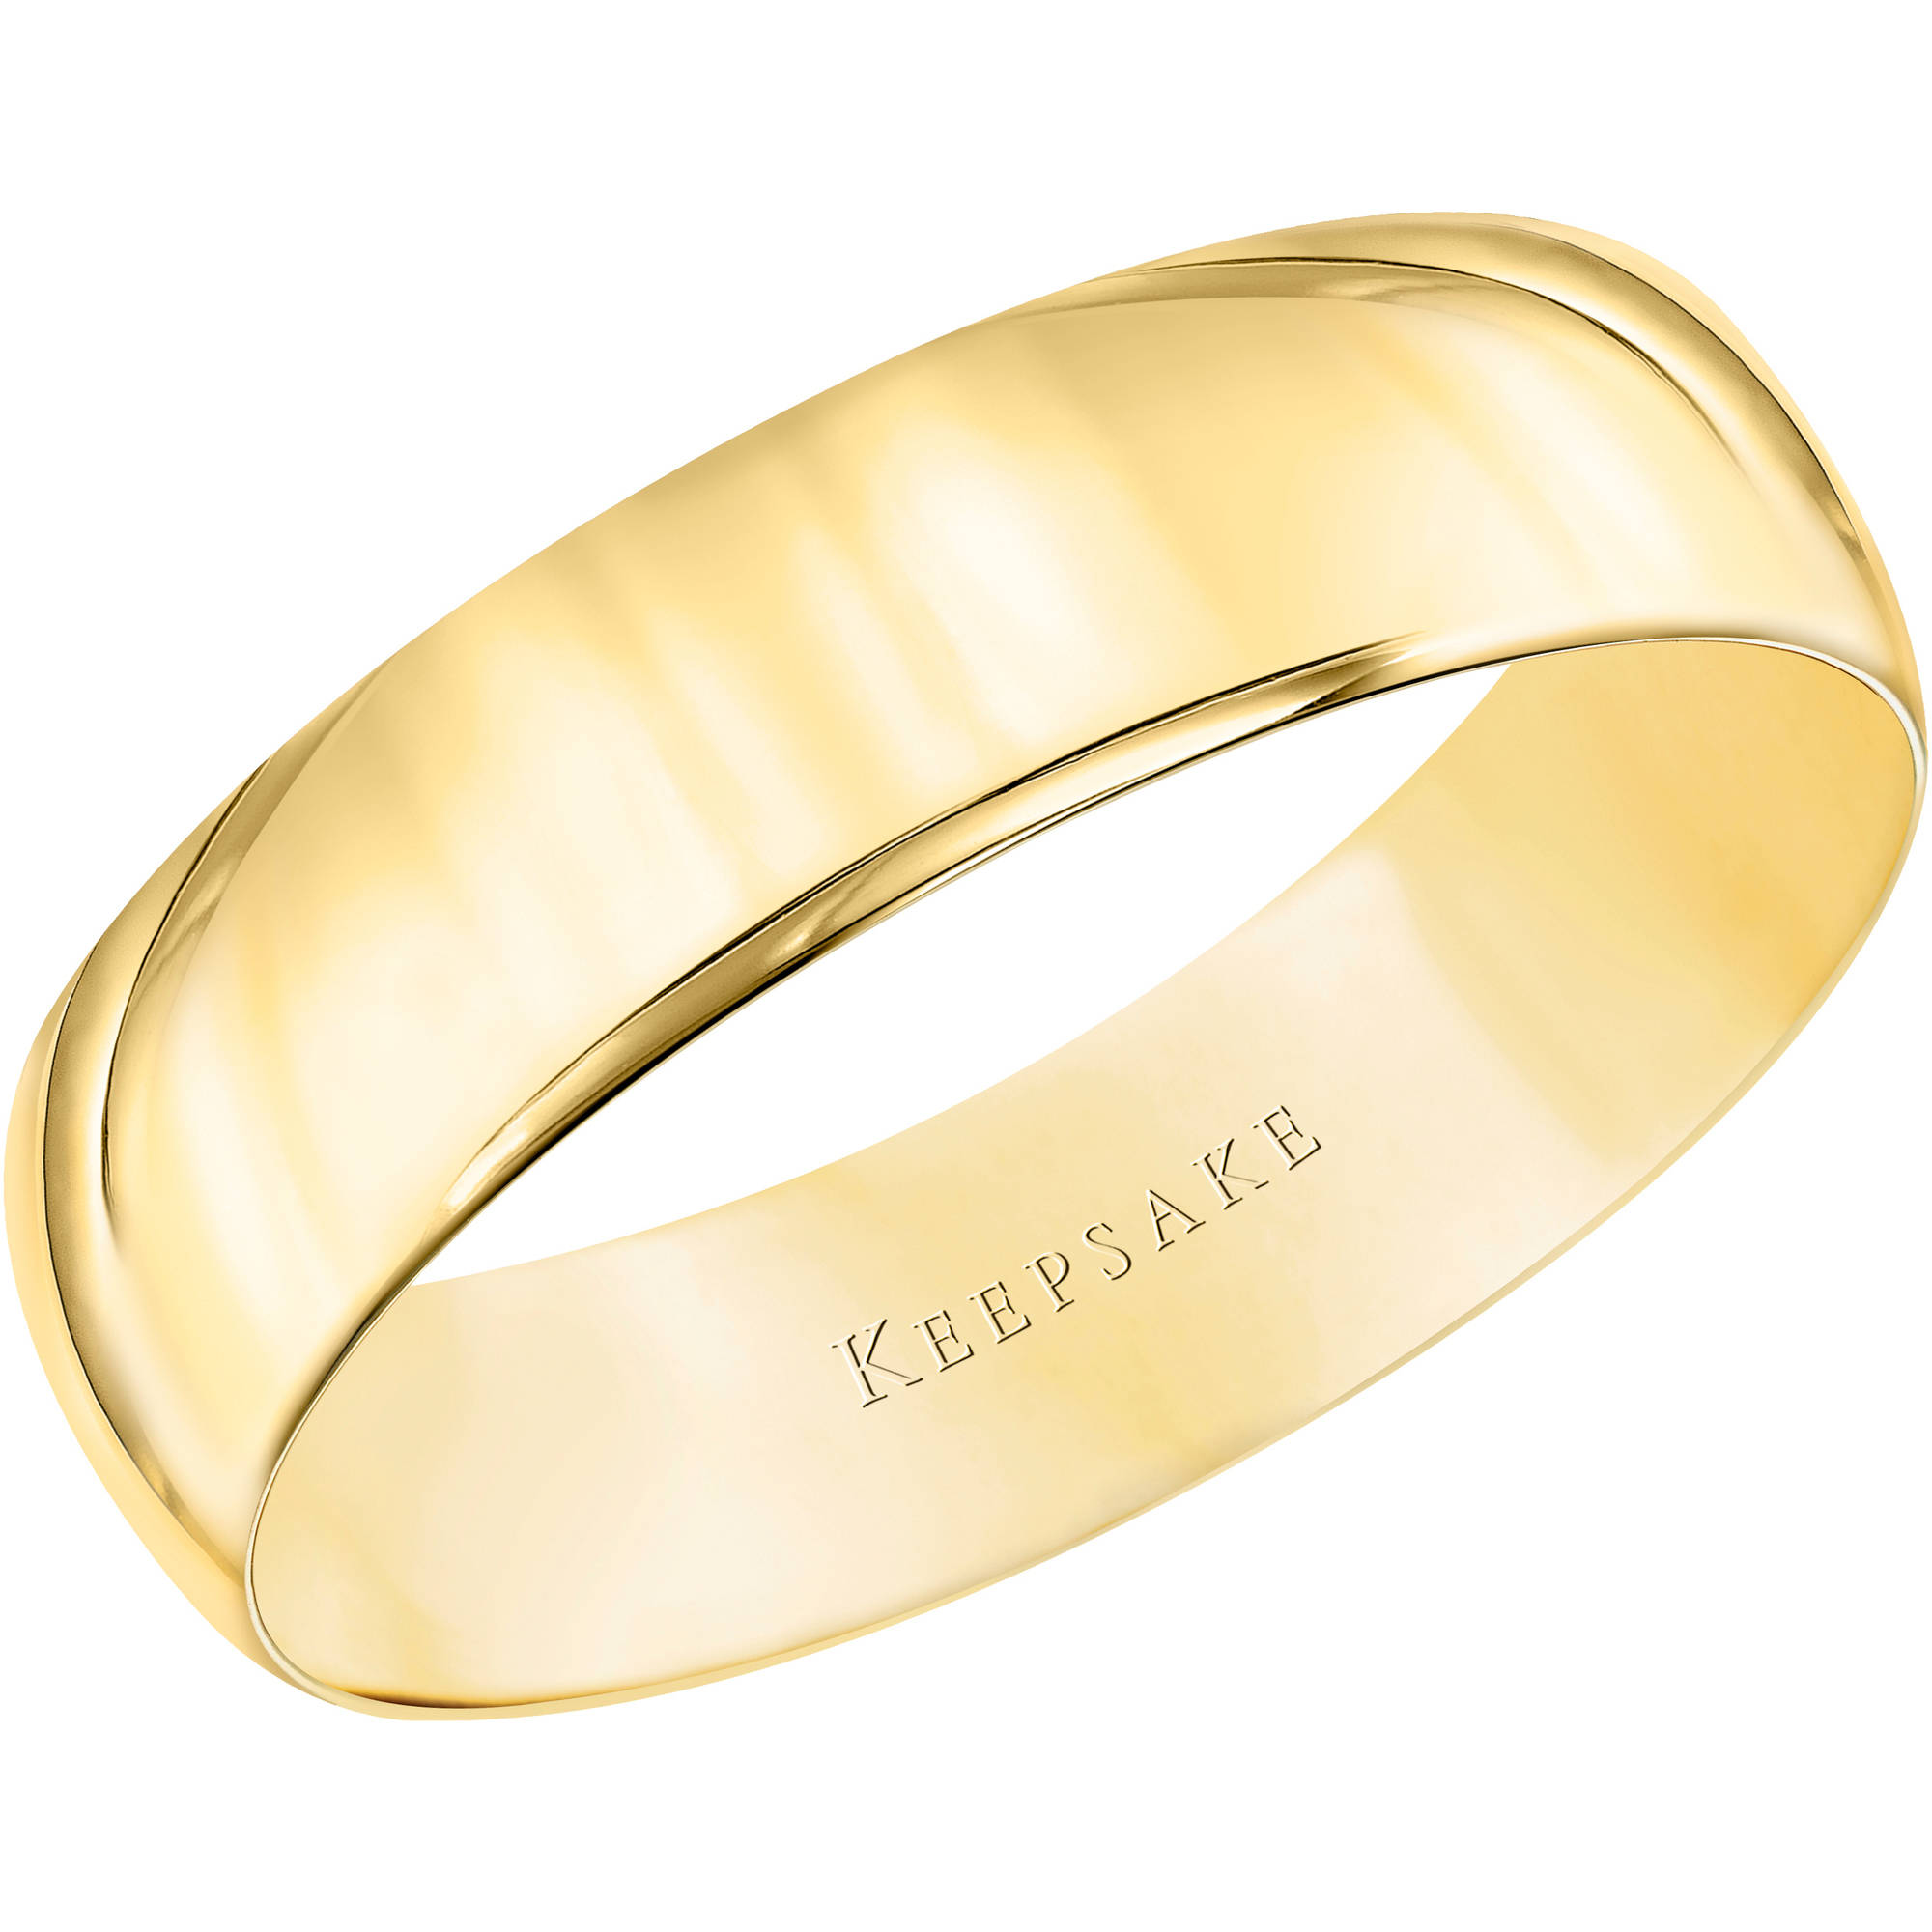 Keepsake Keepsake 10kt Yellow Gold Comfort Fit Wedding Band 5 5mm